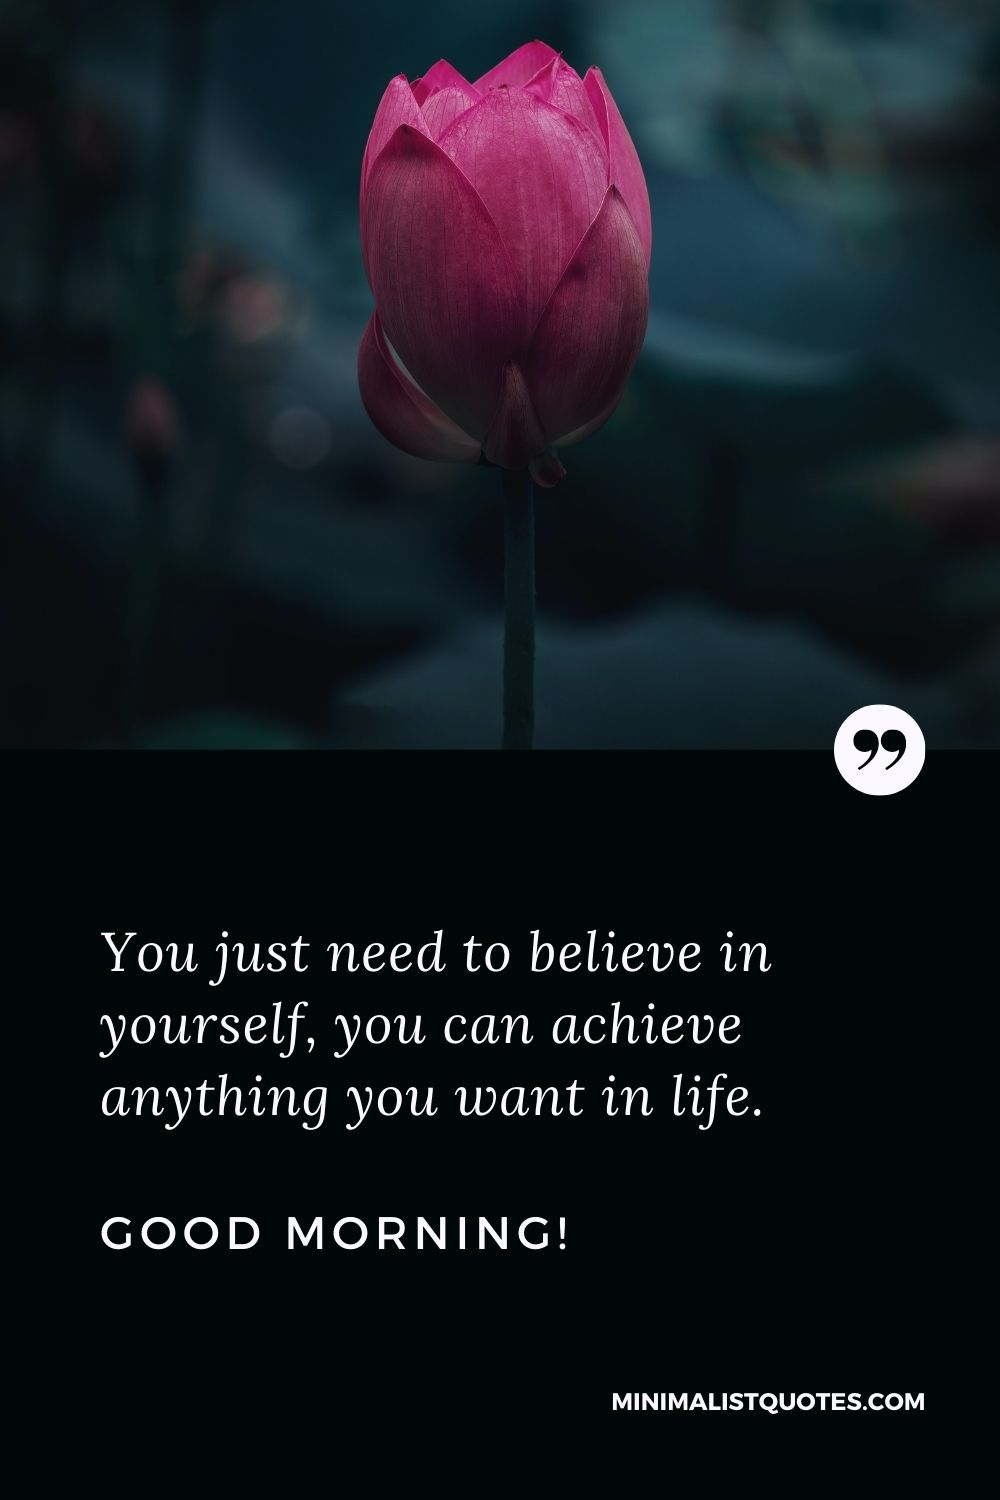 Positive Good Morning Message: You just need to believe in yourself, you can achieve anything you want in life. Good Morning!